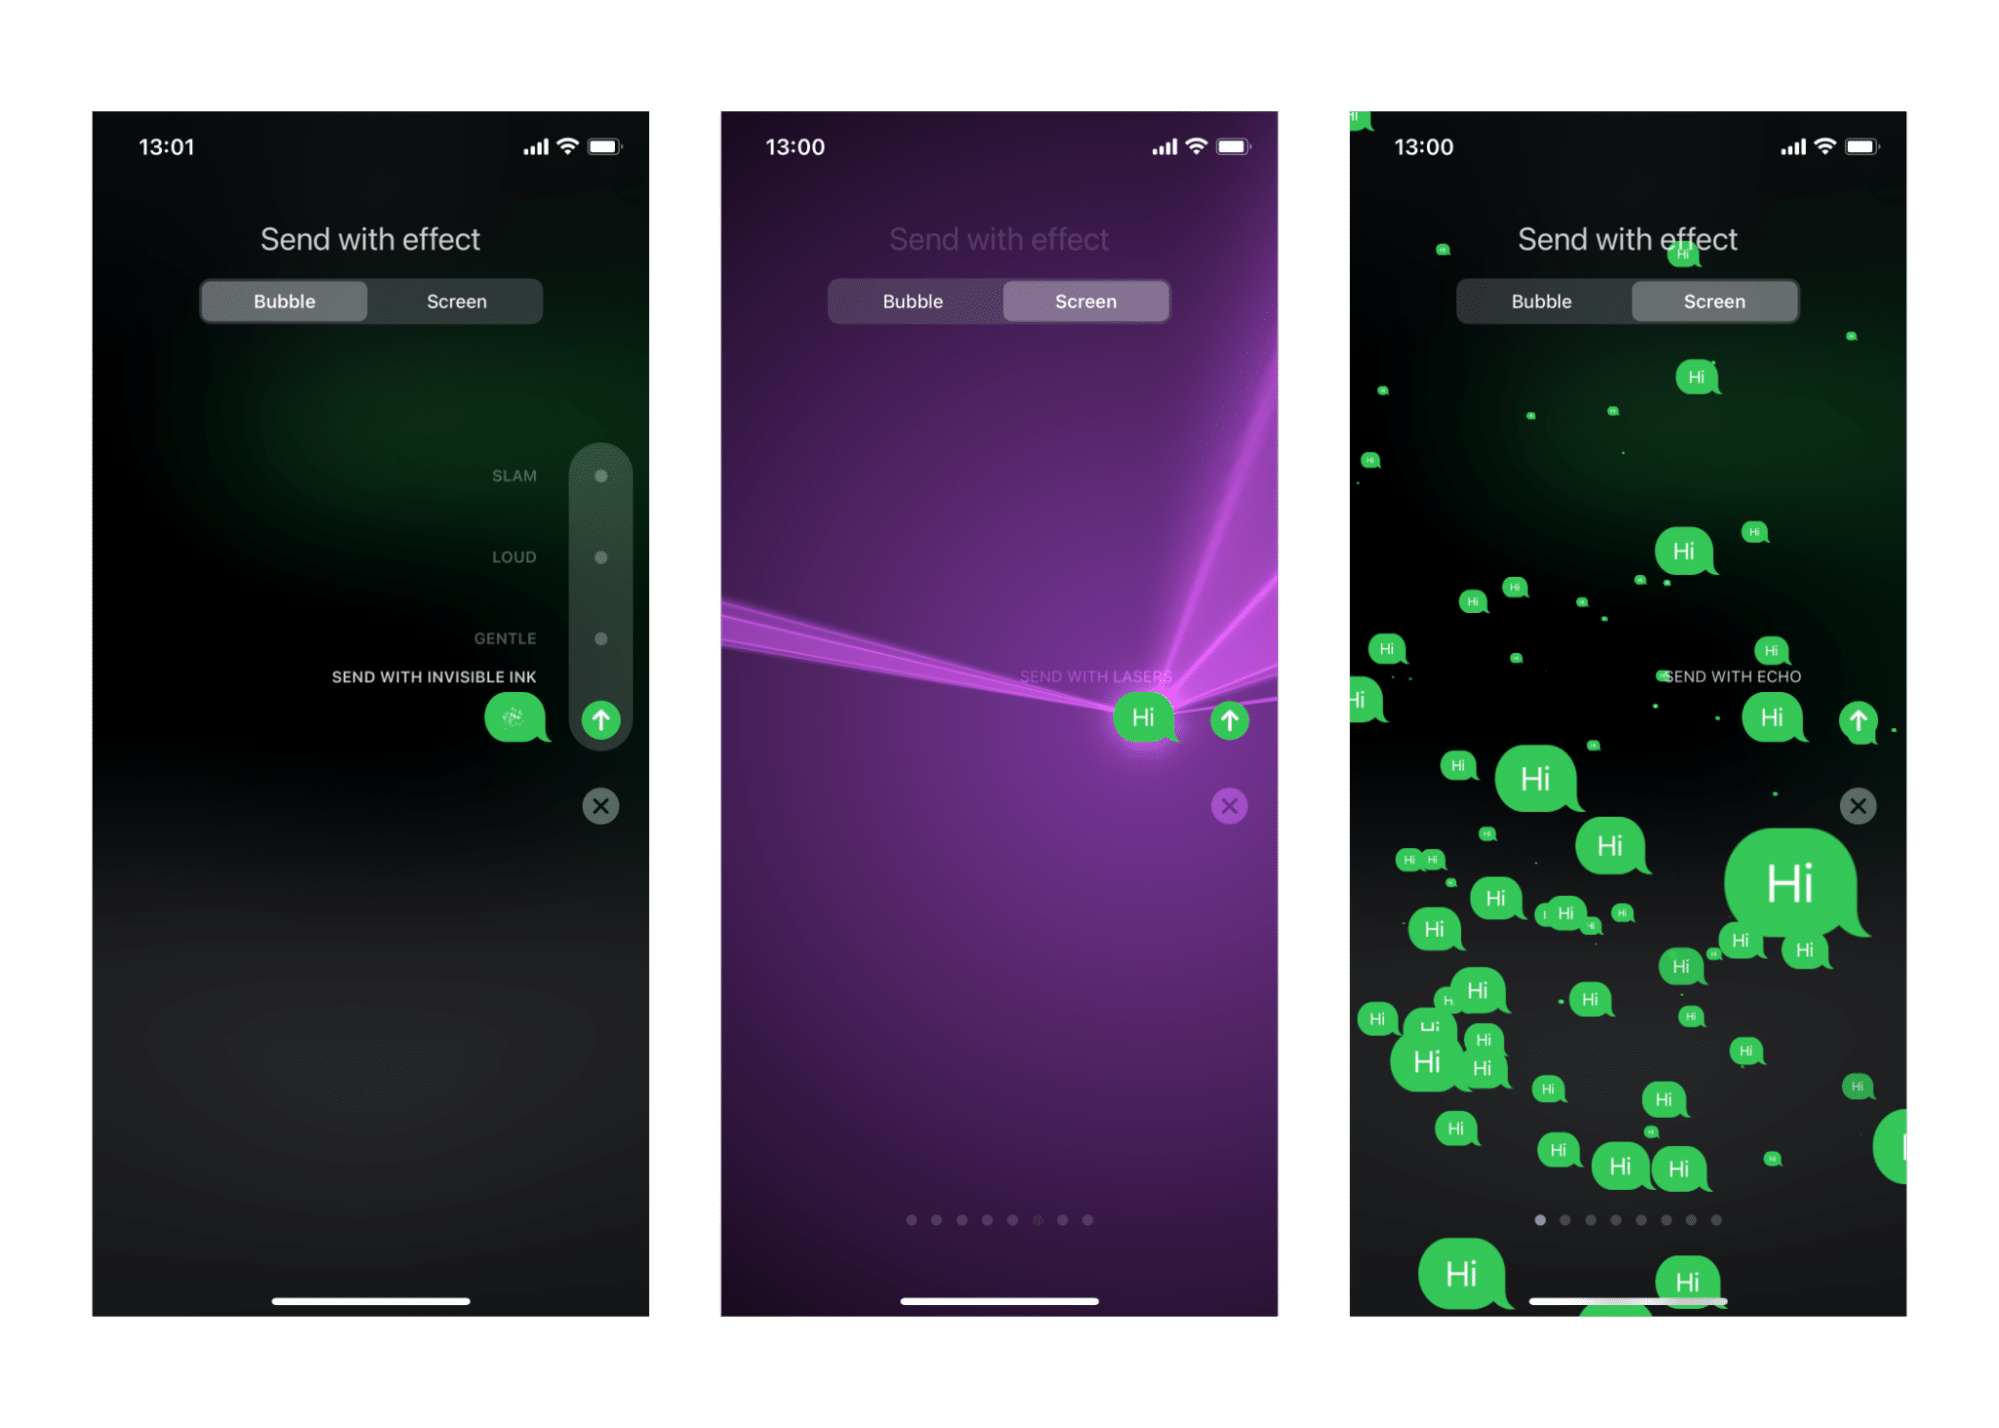 Effects for messages on iPhone